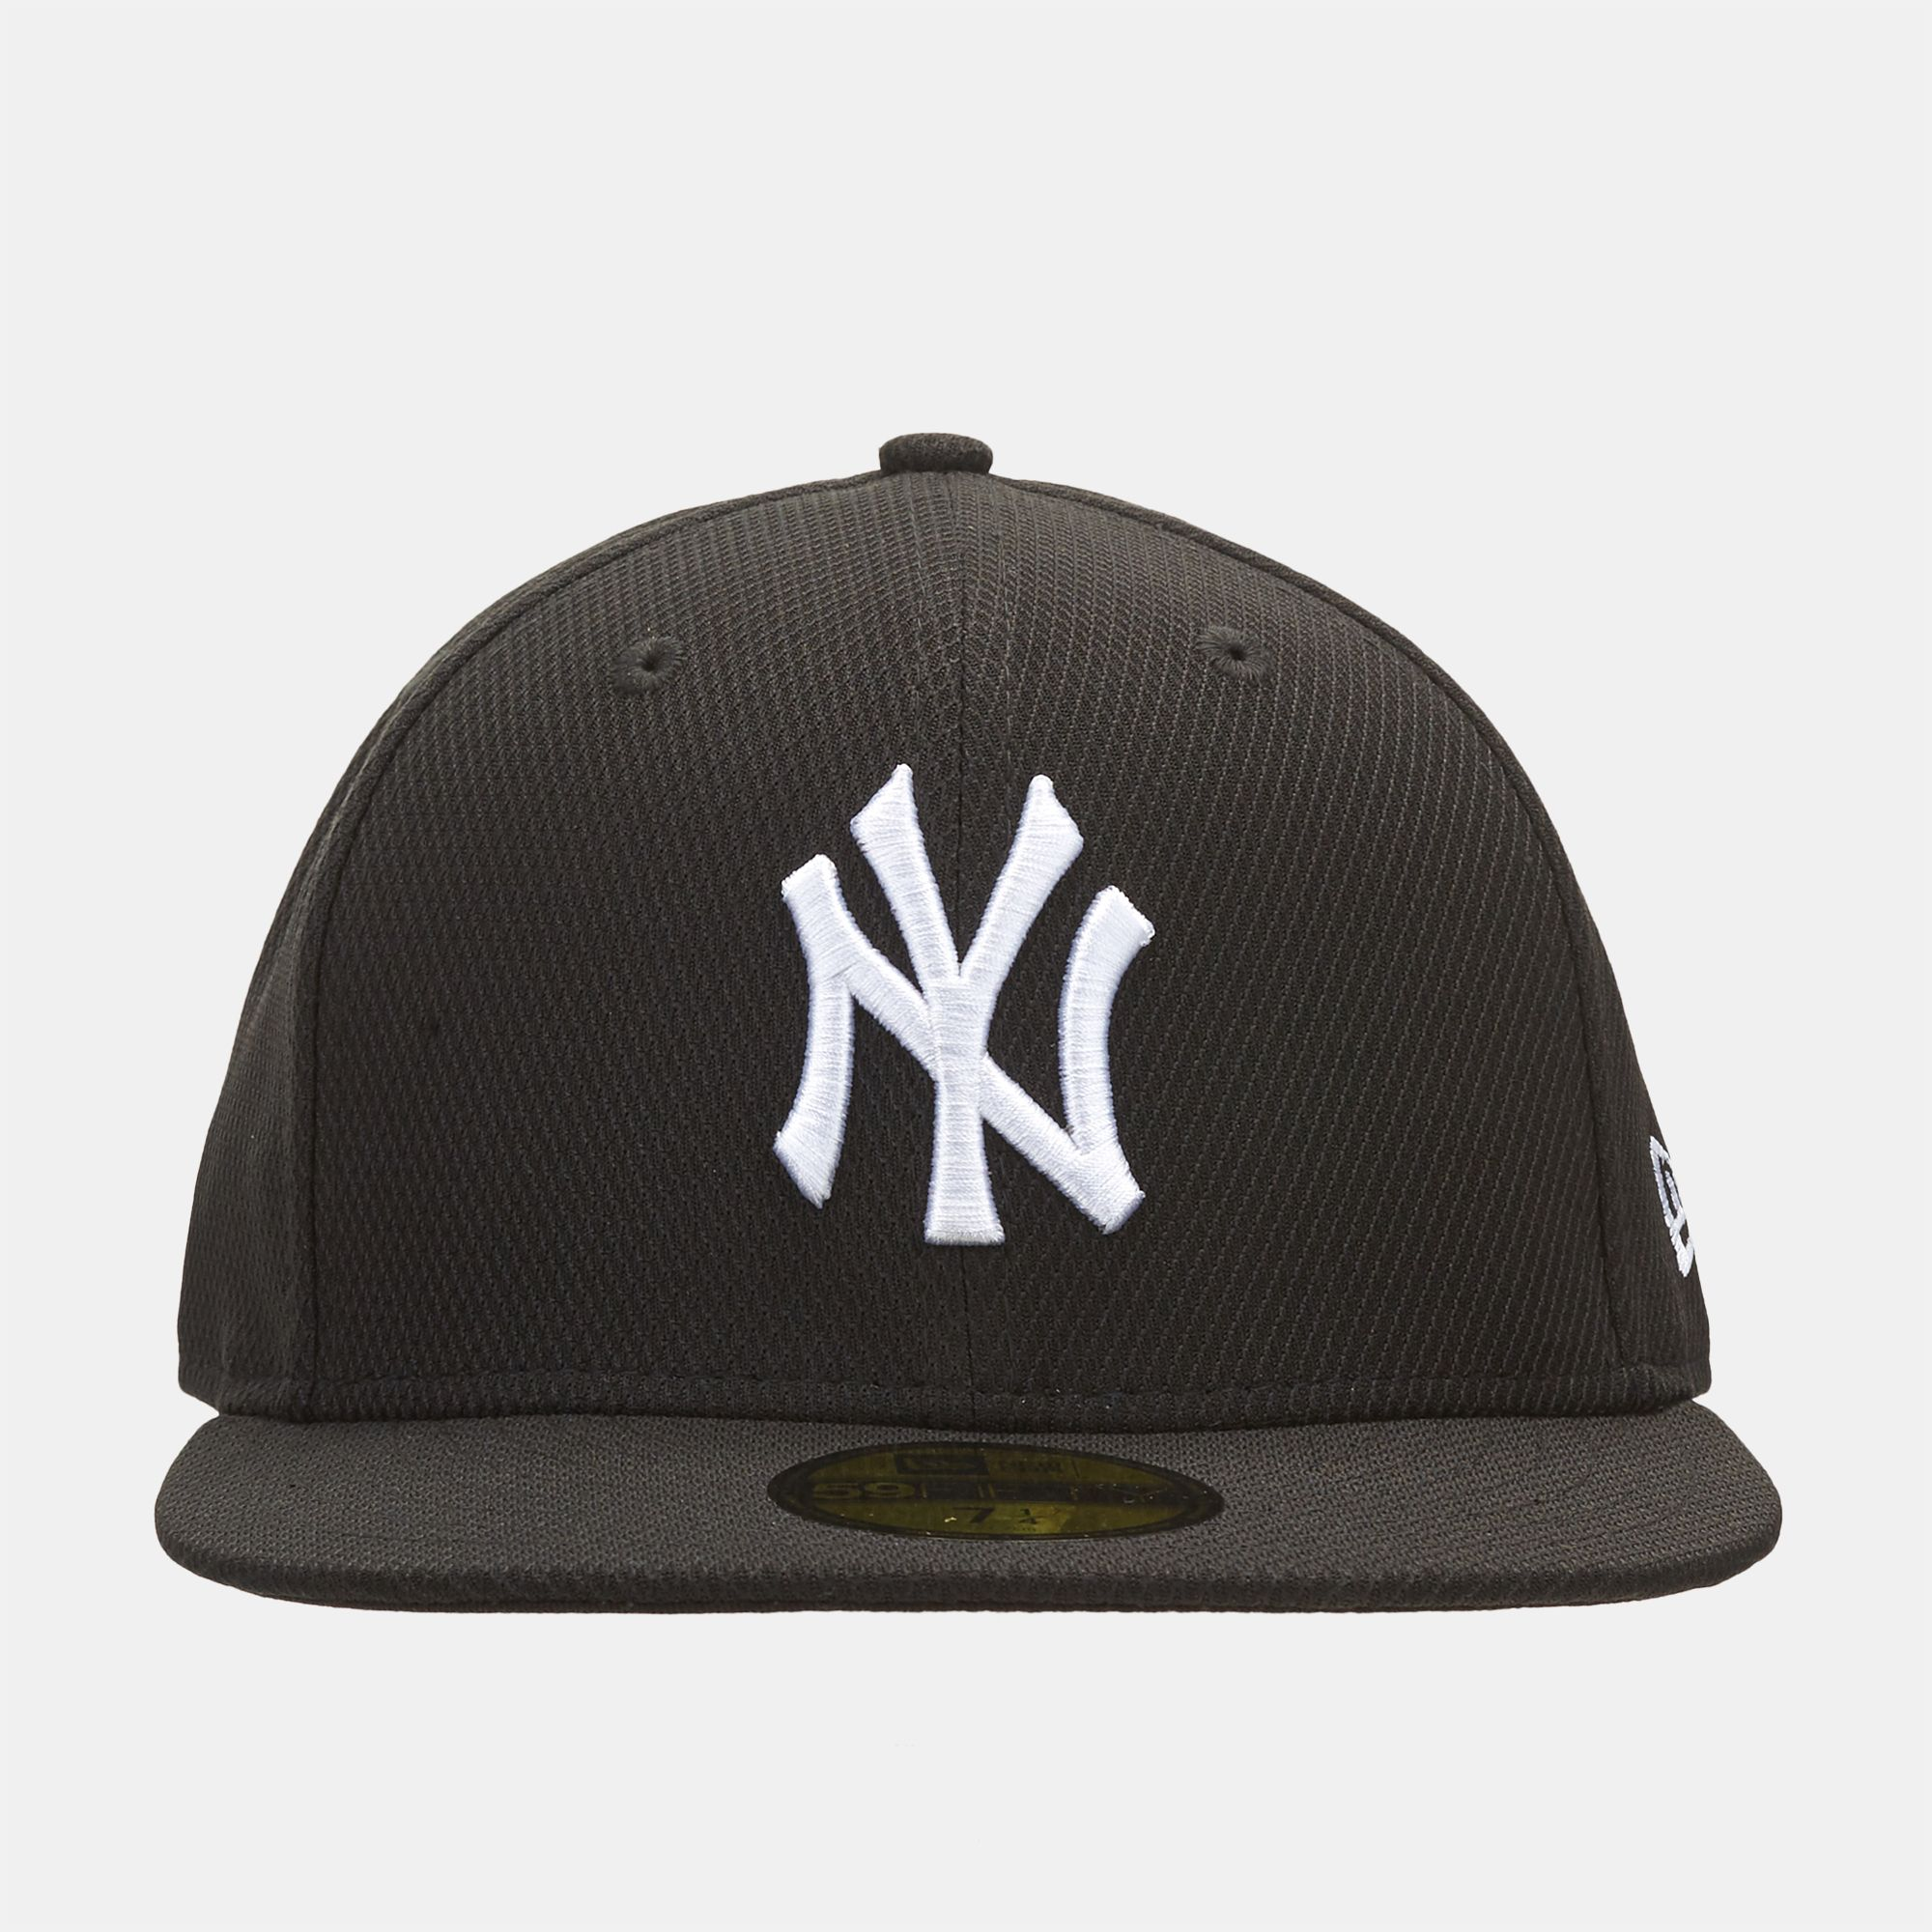 502504d4499 ... cheap new era mlb diamond essential new york yankees 59fifty fitted cap  576ef 50008 ...